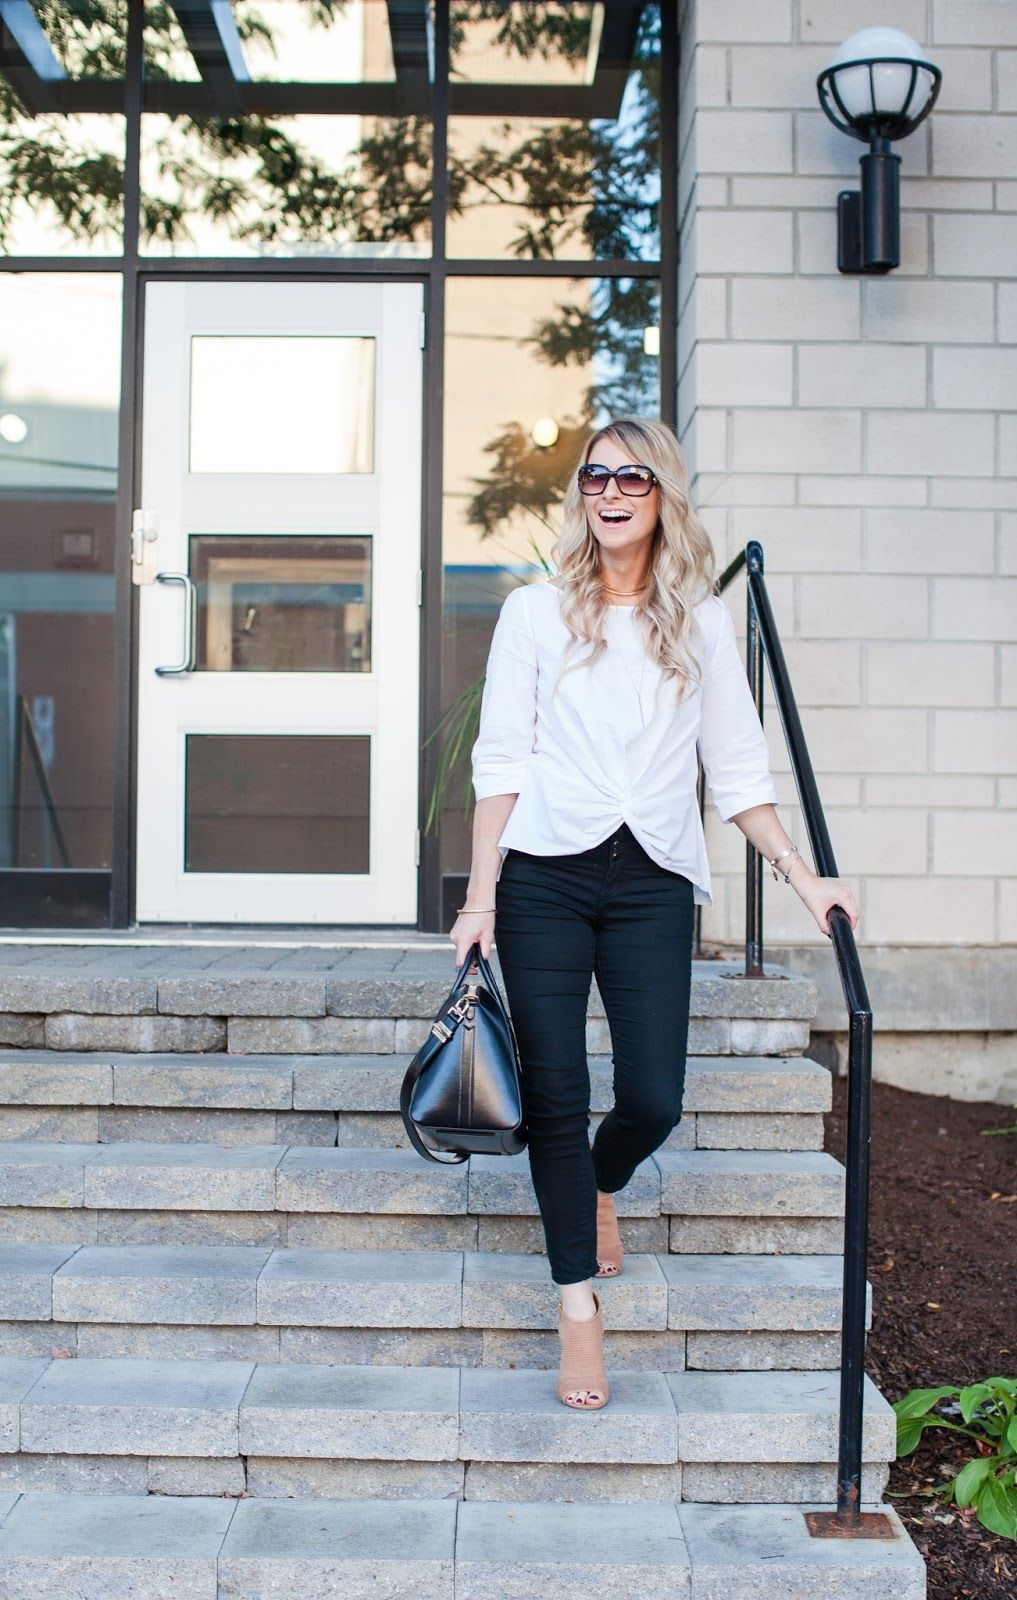 spring outfit ideas - perforated booties - black skinnies outfit - tie front top - givenchy antigona